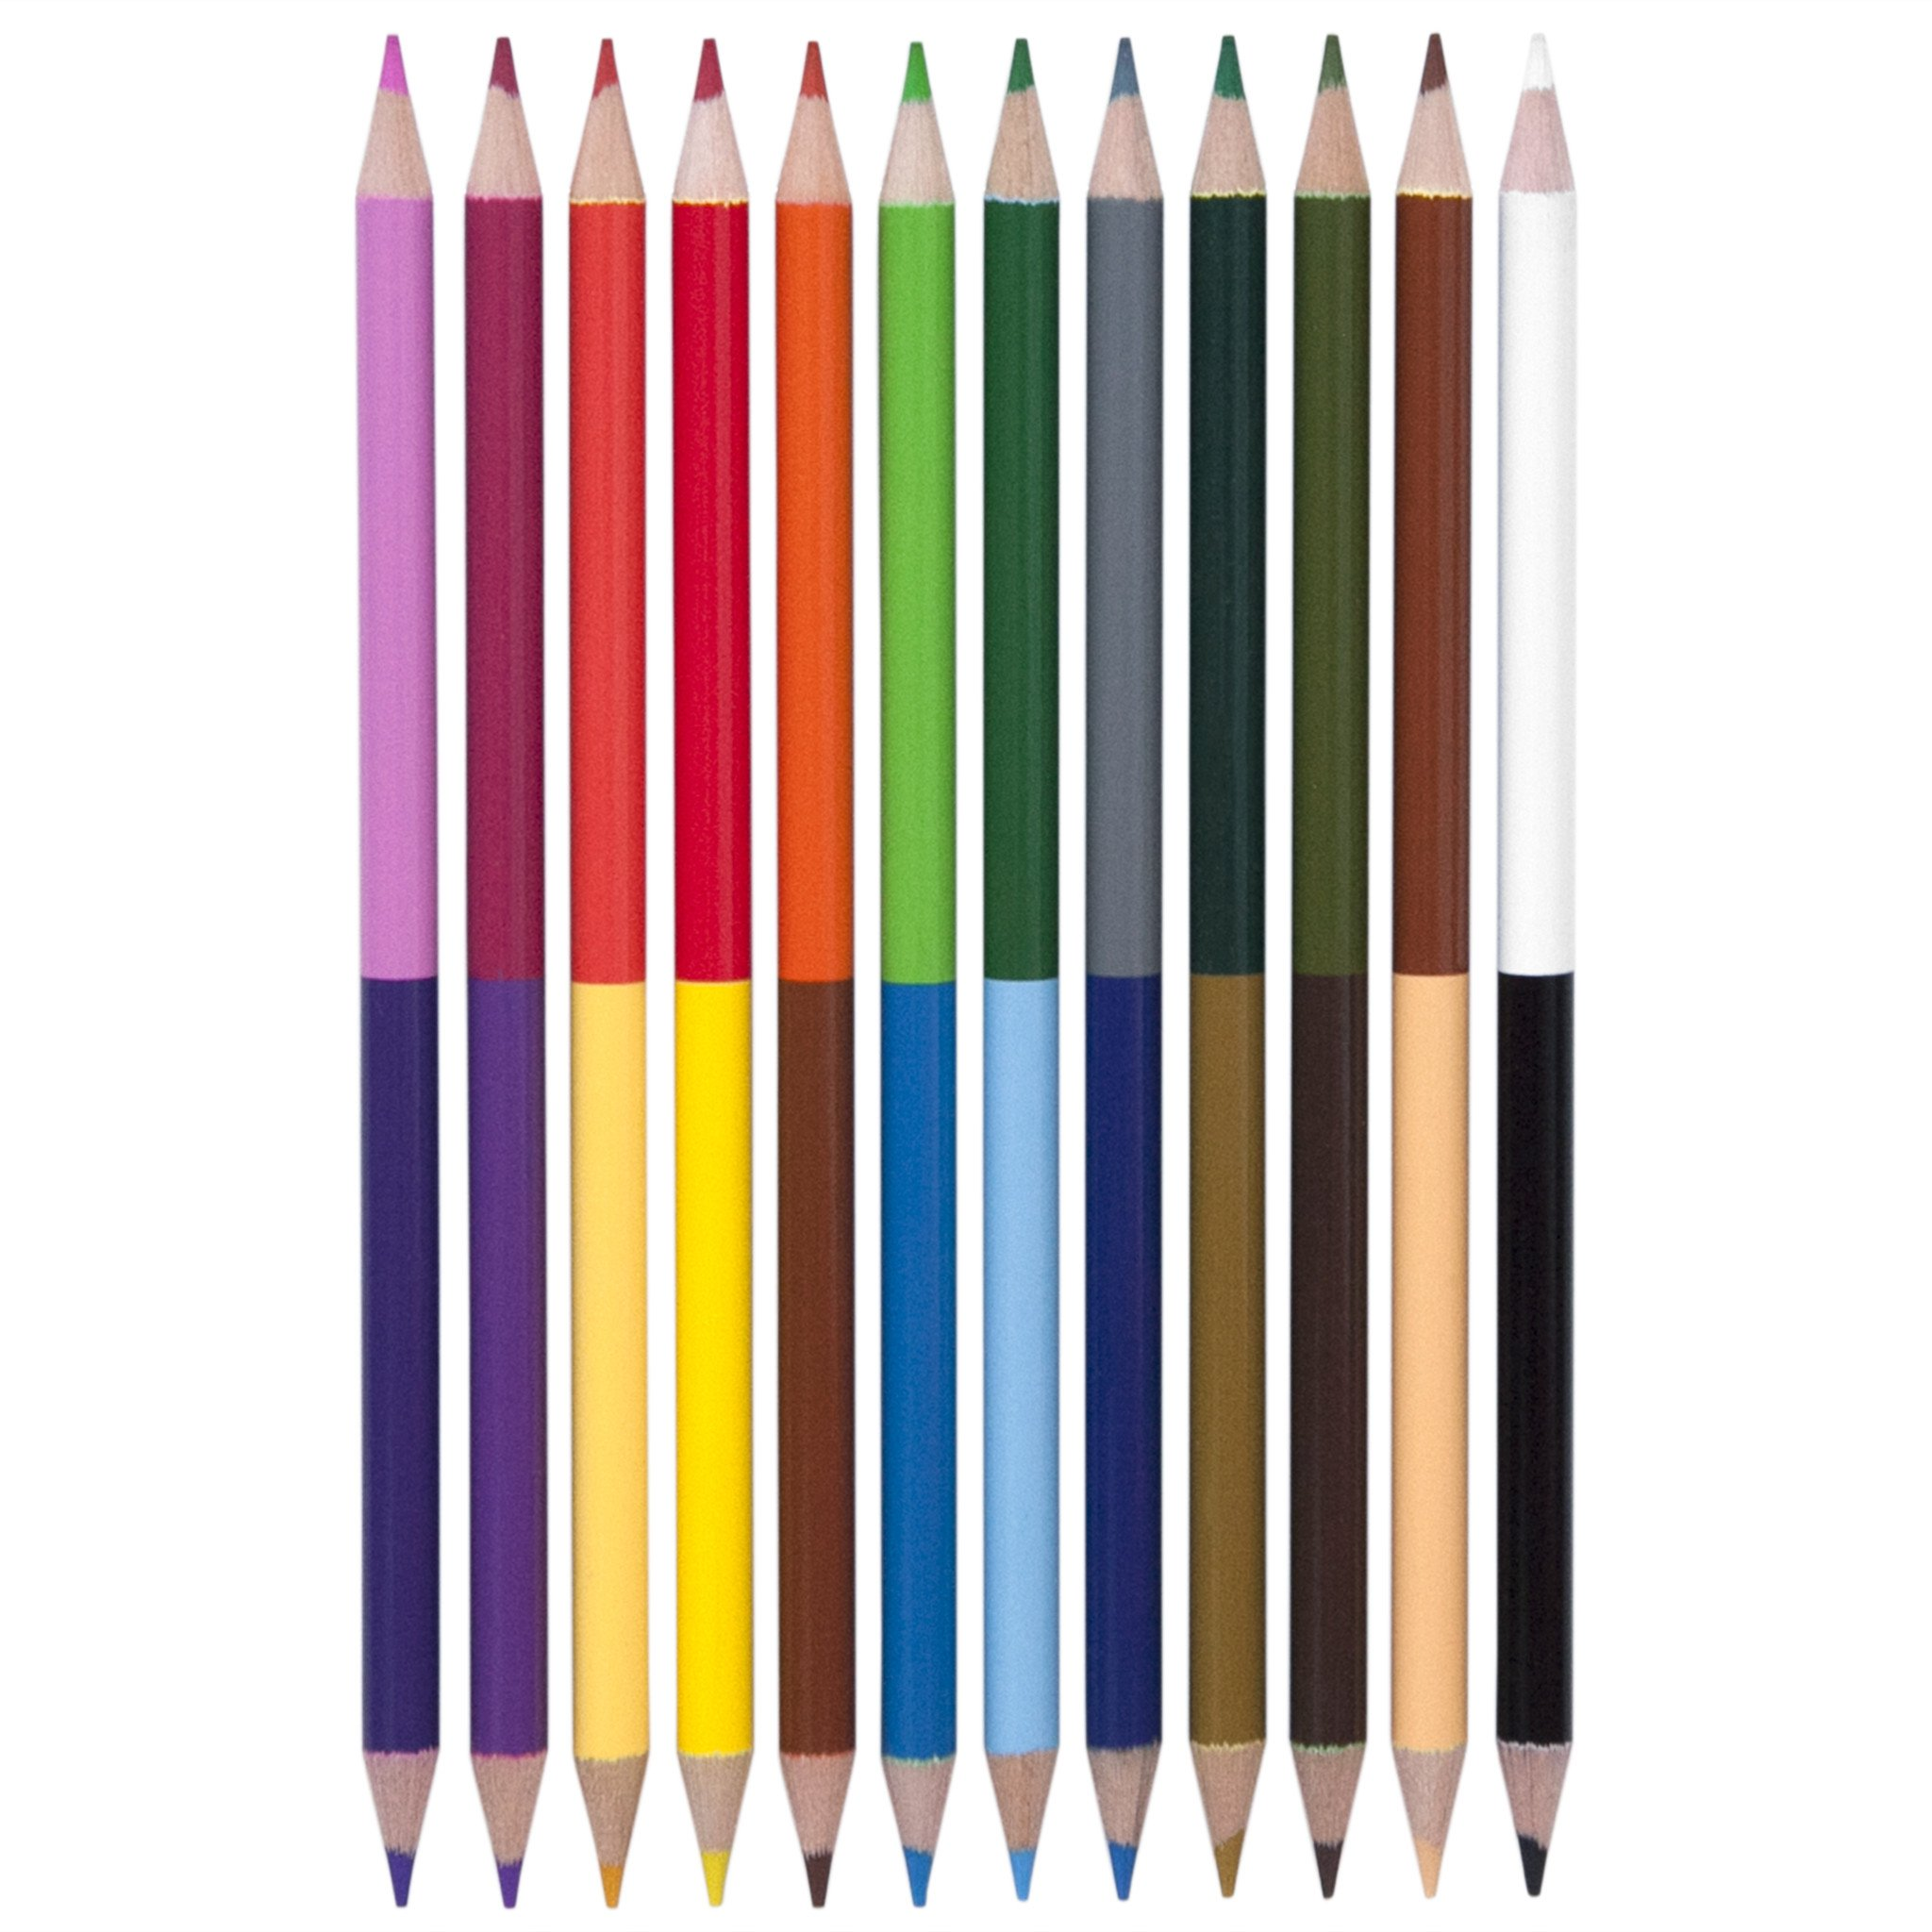 Double Ended Colored Pencils, 12 Pack - Multicolor - Yoobi